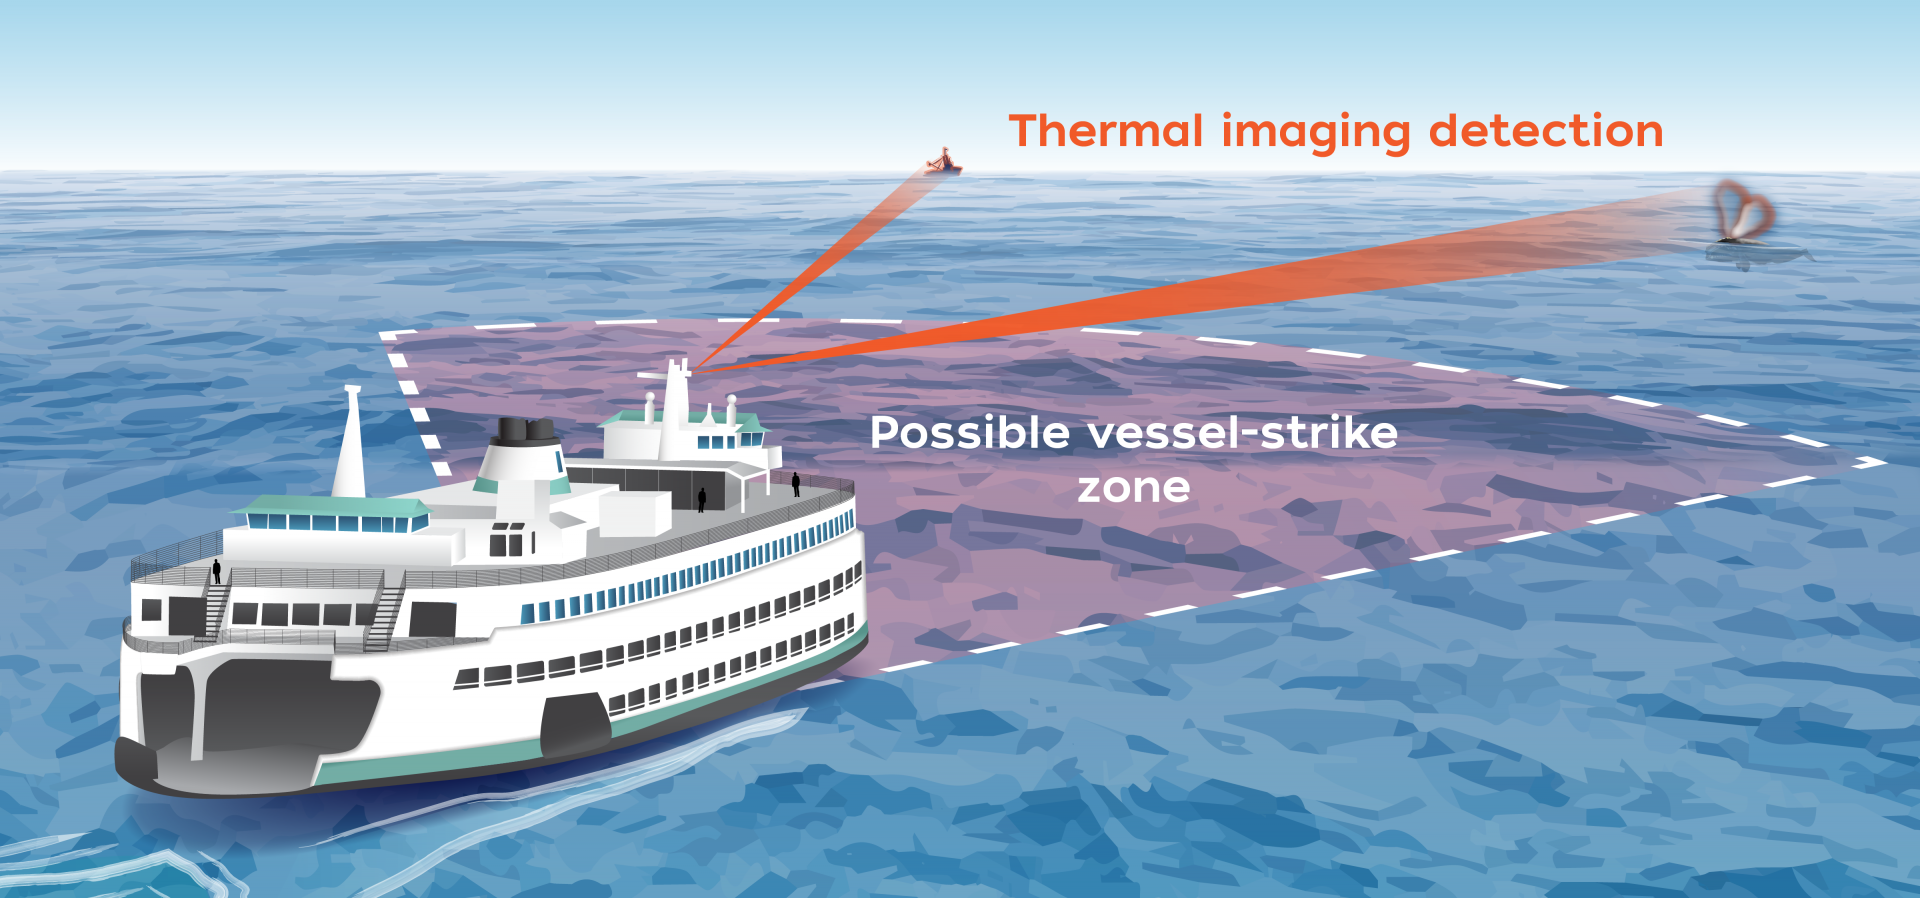 Thermal imaging camera systems mounted on ferries and ships are able to detect moving objects several miles away. If a whale is identified, the system sends an alert within seconds, enough time for most vessels to slow down or change course. (Illustration by Natalie Renier, WHOI Creative.)